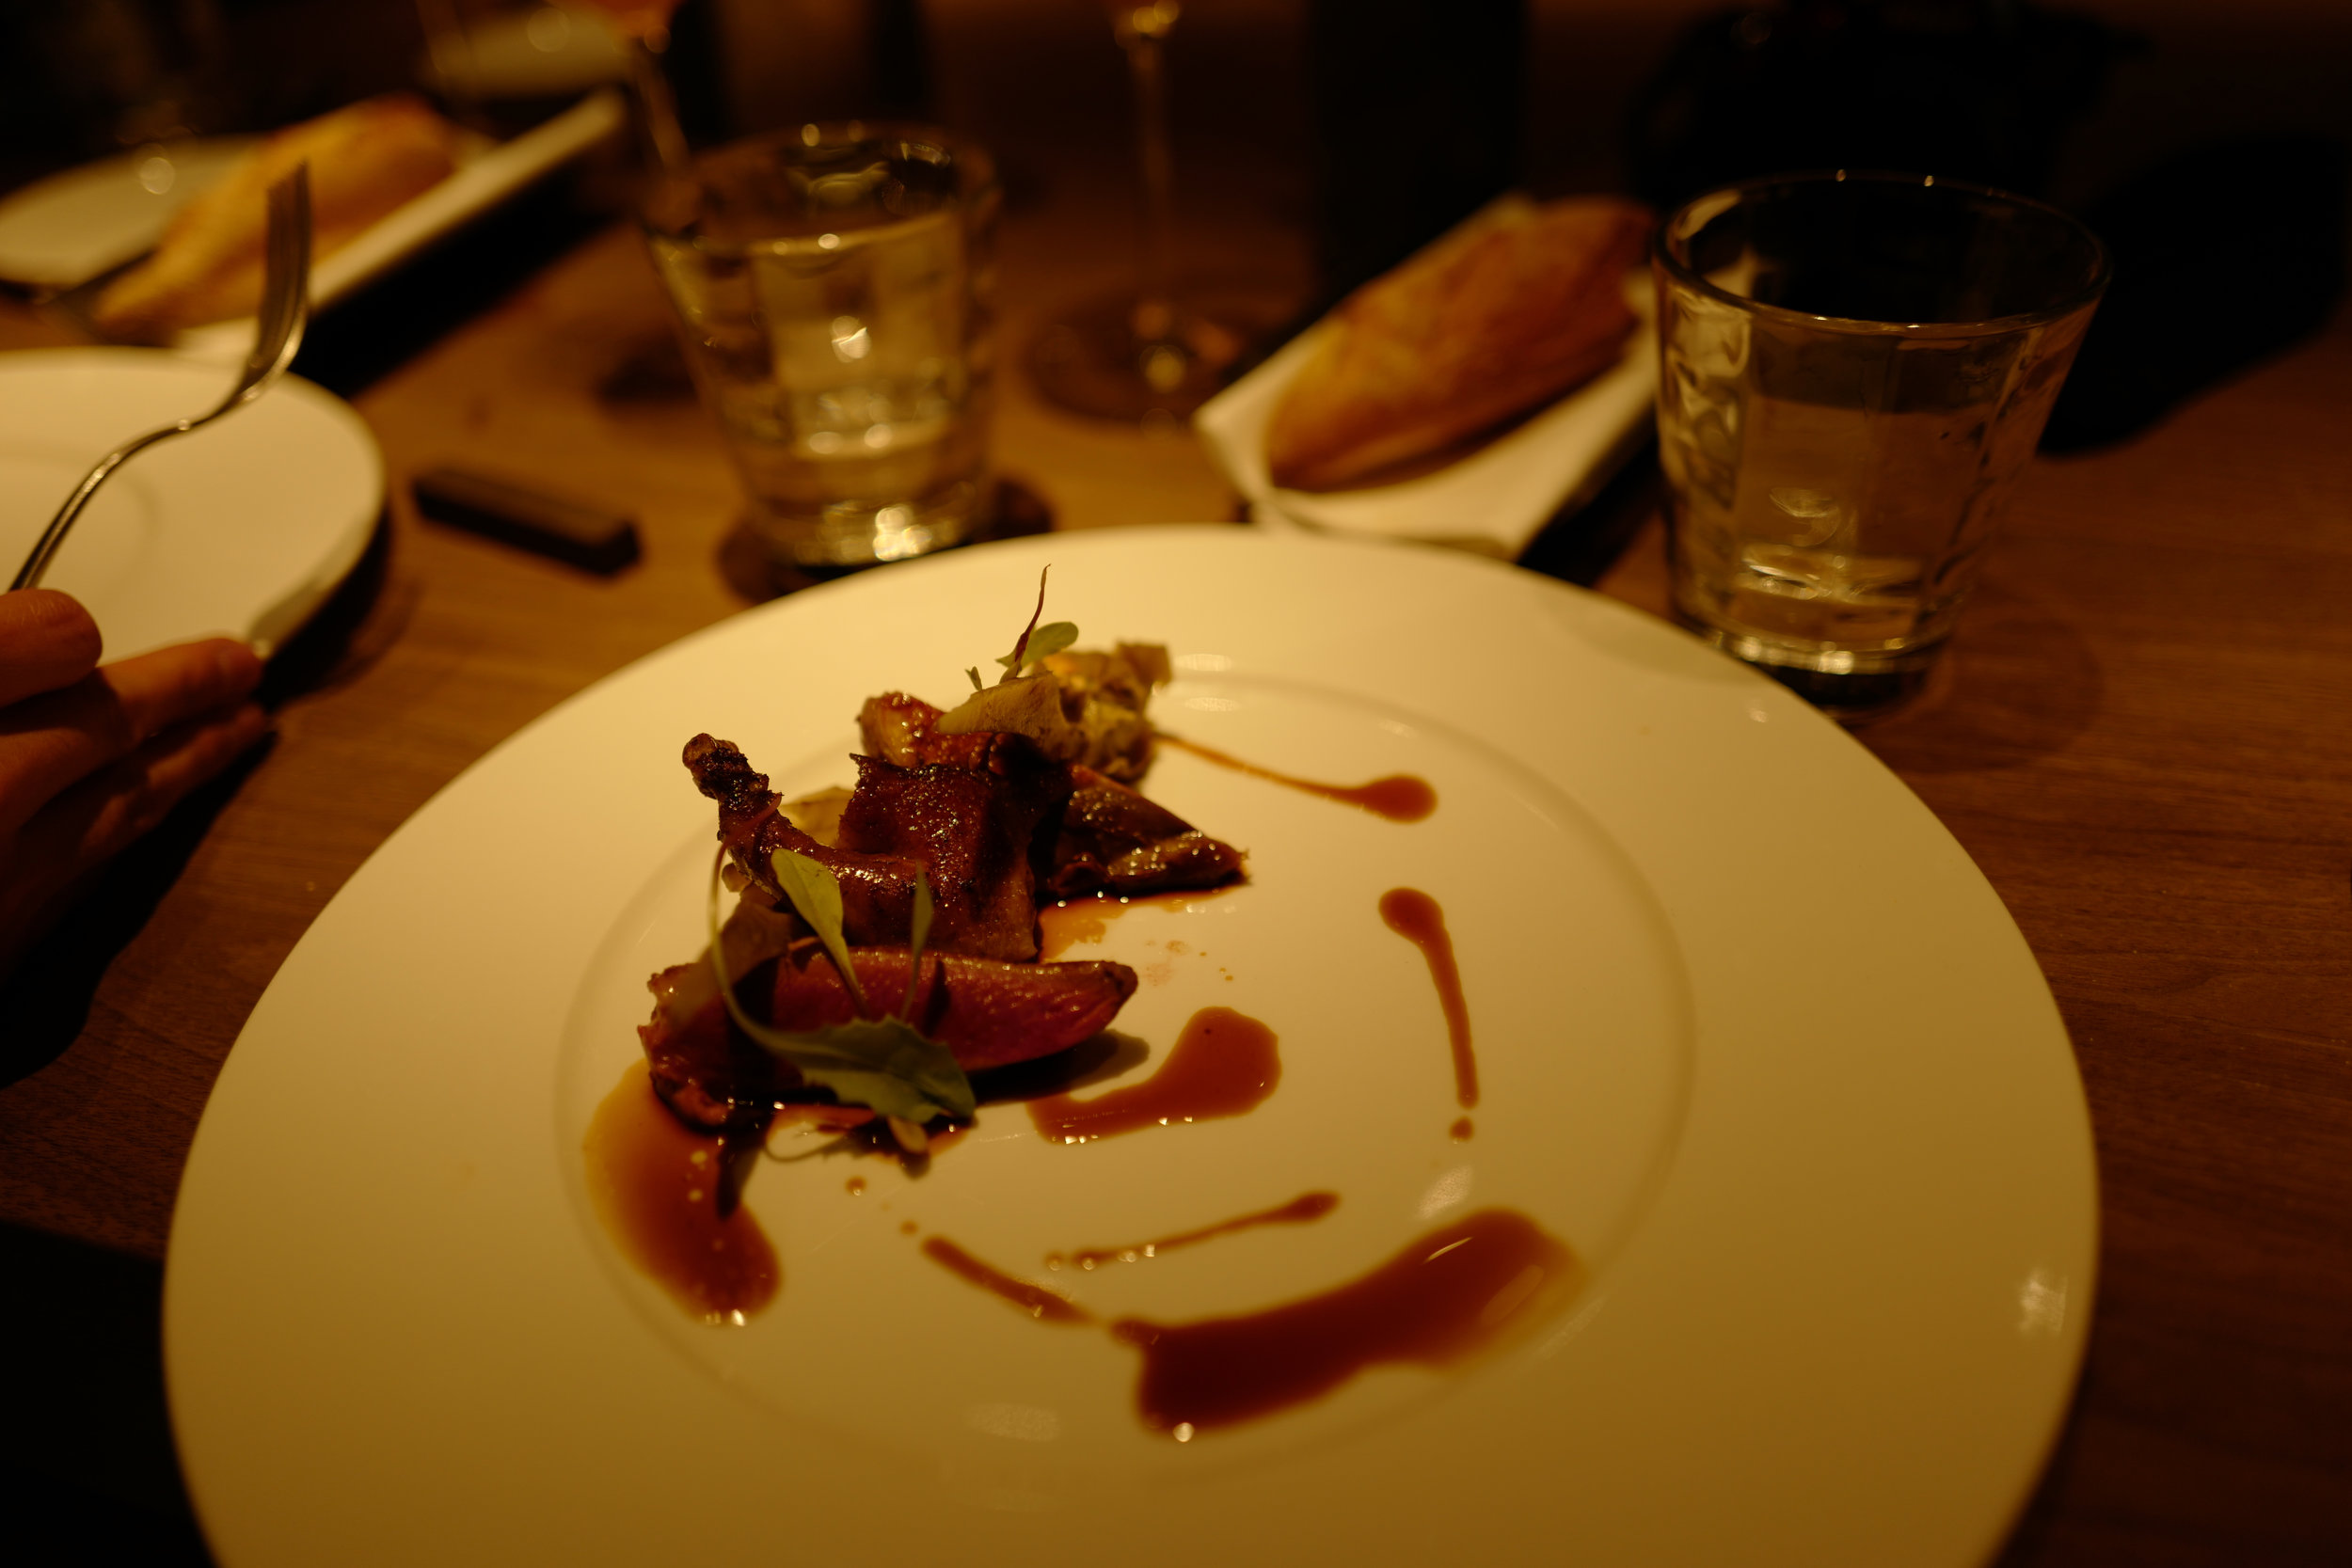 Pigeon course - very tender